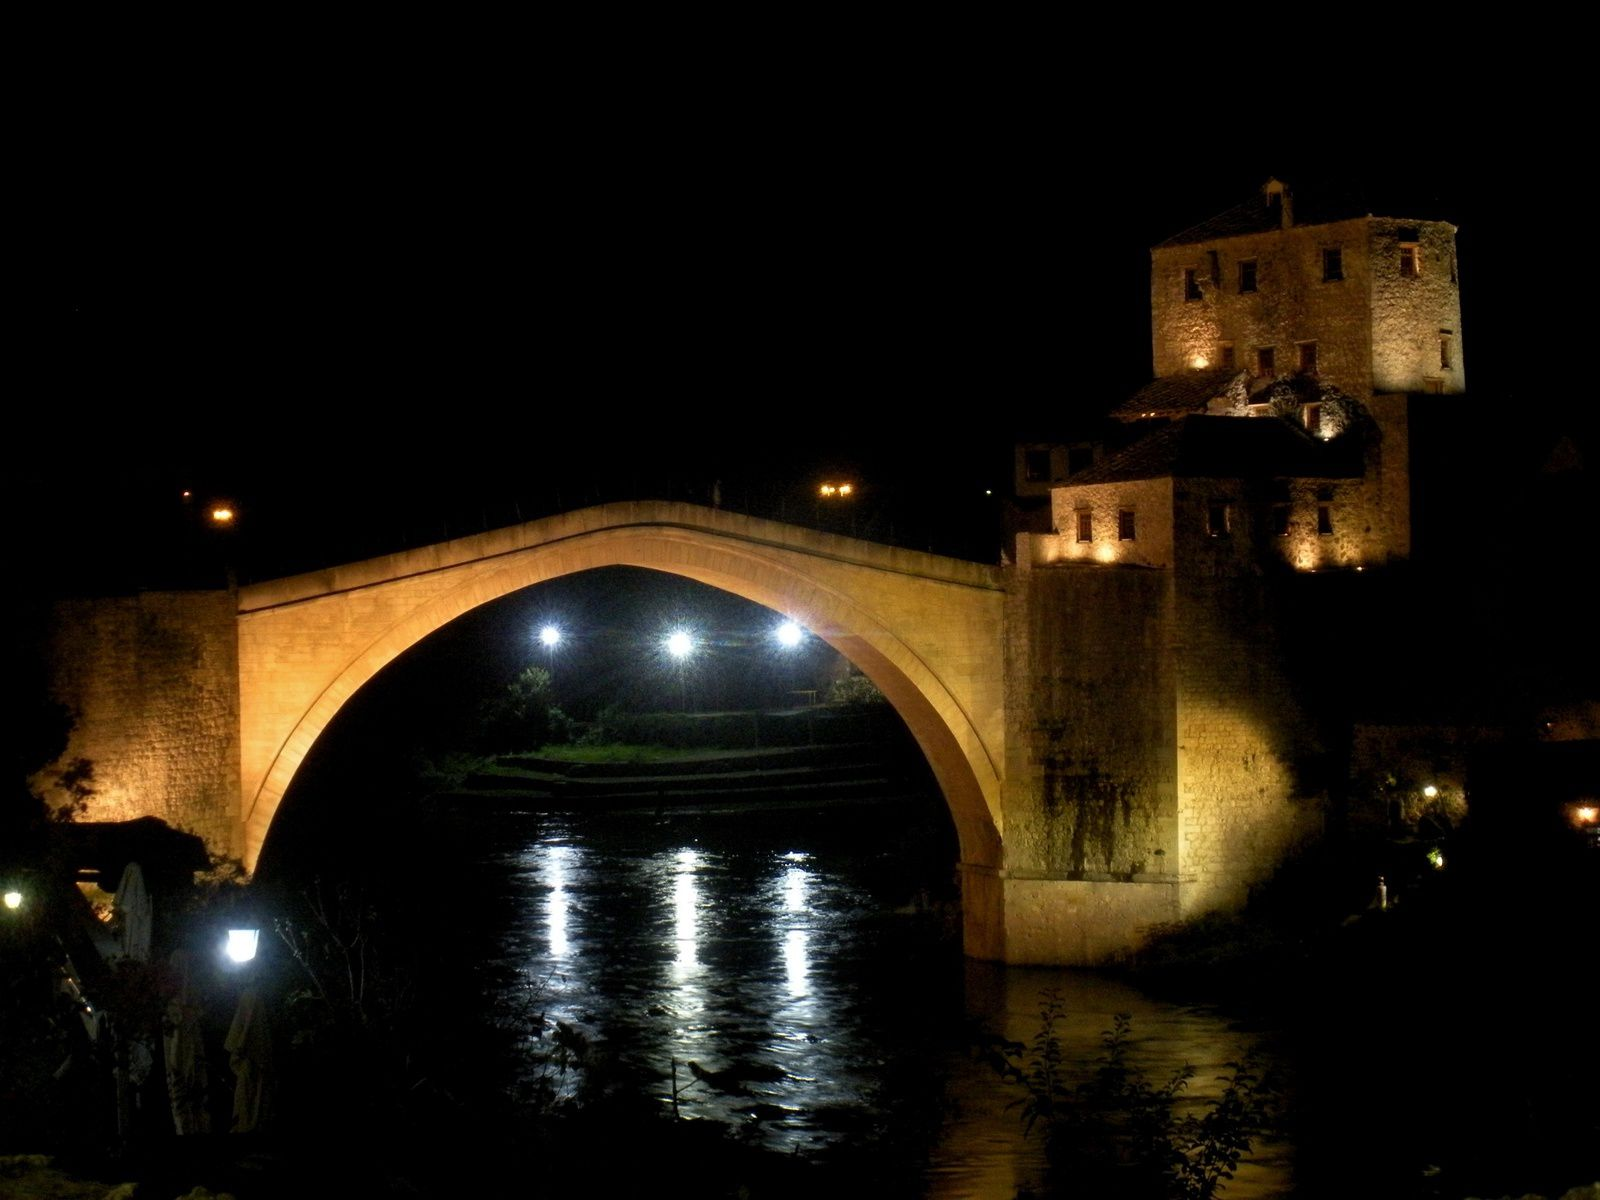 We feel very good in this country, enjoying the Ottoman Old city of Mostar with the famous Stari Most (a 500 years old bridge blown up during the war by the Croats and rebuilt using the same technique) and the crossroad town of Sarajevo where the Ortodox (Serbs), Catholic (Croats) and Muslims (Bosniaks) seem to be living peacefully. The signs of the war are still evident in the facades of the houses, the hills around the city and parks are full of graves that remember us the period when the city was besieged (93-95) and the people who died in the conflict. The locals still live in the past sitting in cafes with music from the 80´s but all in all Sarajevo is a cosy city that has witnessed so many events in history: Winter Olympics in ´84, Franz Ferdinand assassination, the start of the WWI.....